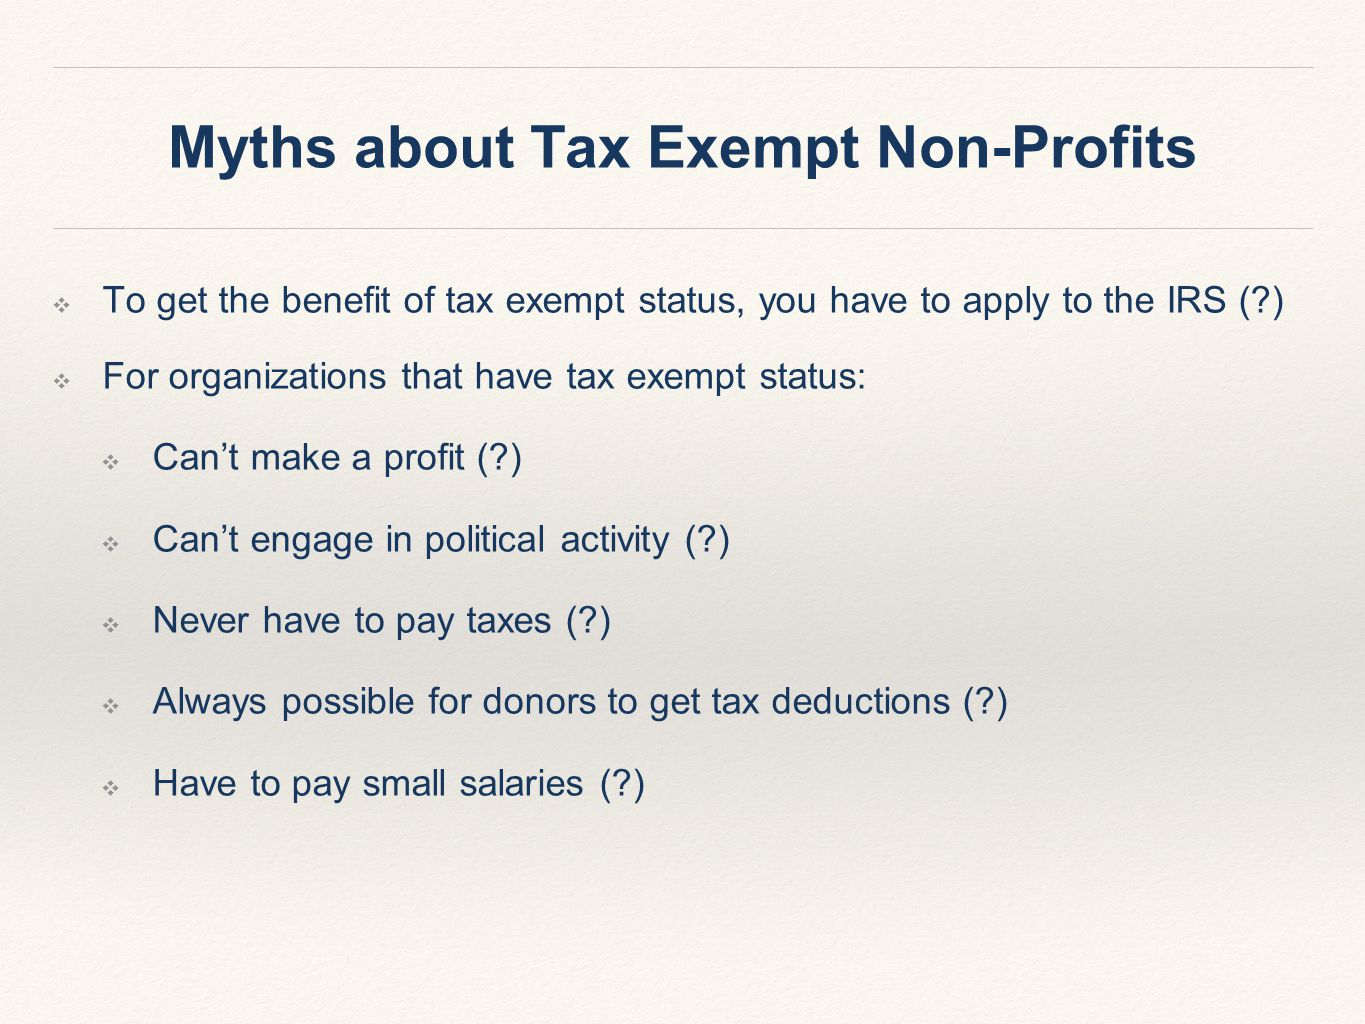 ❖ To get the benefit of tax exempt status, you have to apply to the IRS (?) ❖ For organizations that have tax exempt status: ❖ Can't make a profit (?) ❖ Can't engage in political activity (?) ❖ Never have to pay taxes (?) ❖ Always possible for donors to get tax deductions (?) ❖ Have to pay small salaries (?) Myths about Tax Exempt Non-Profits